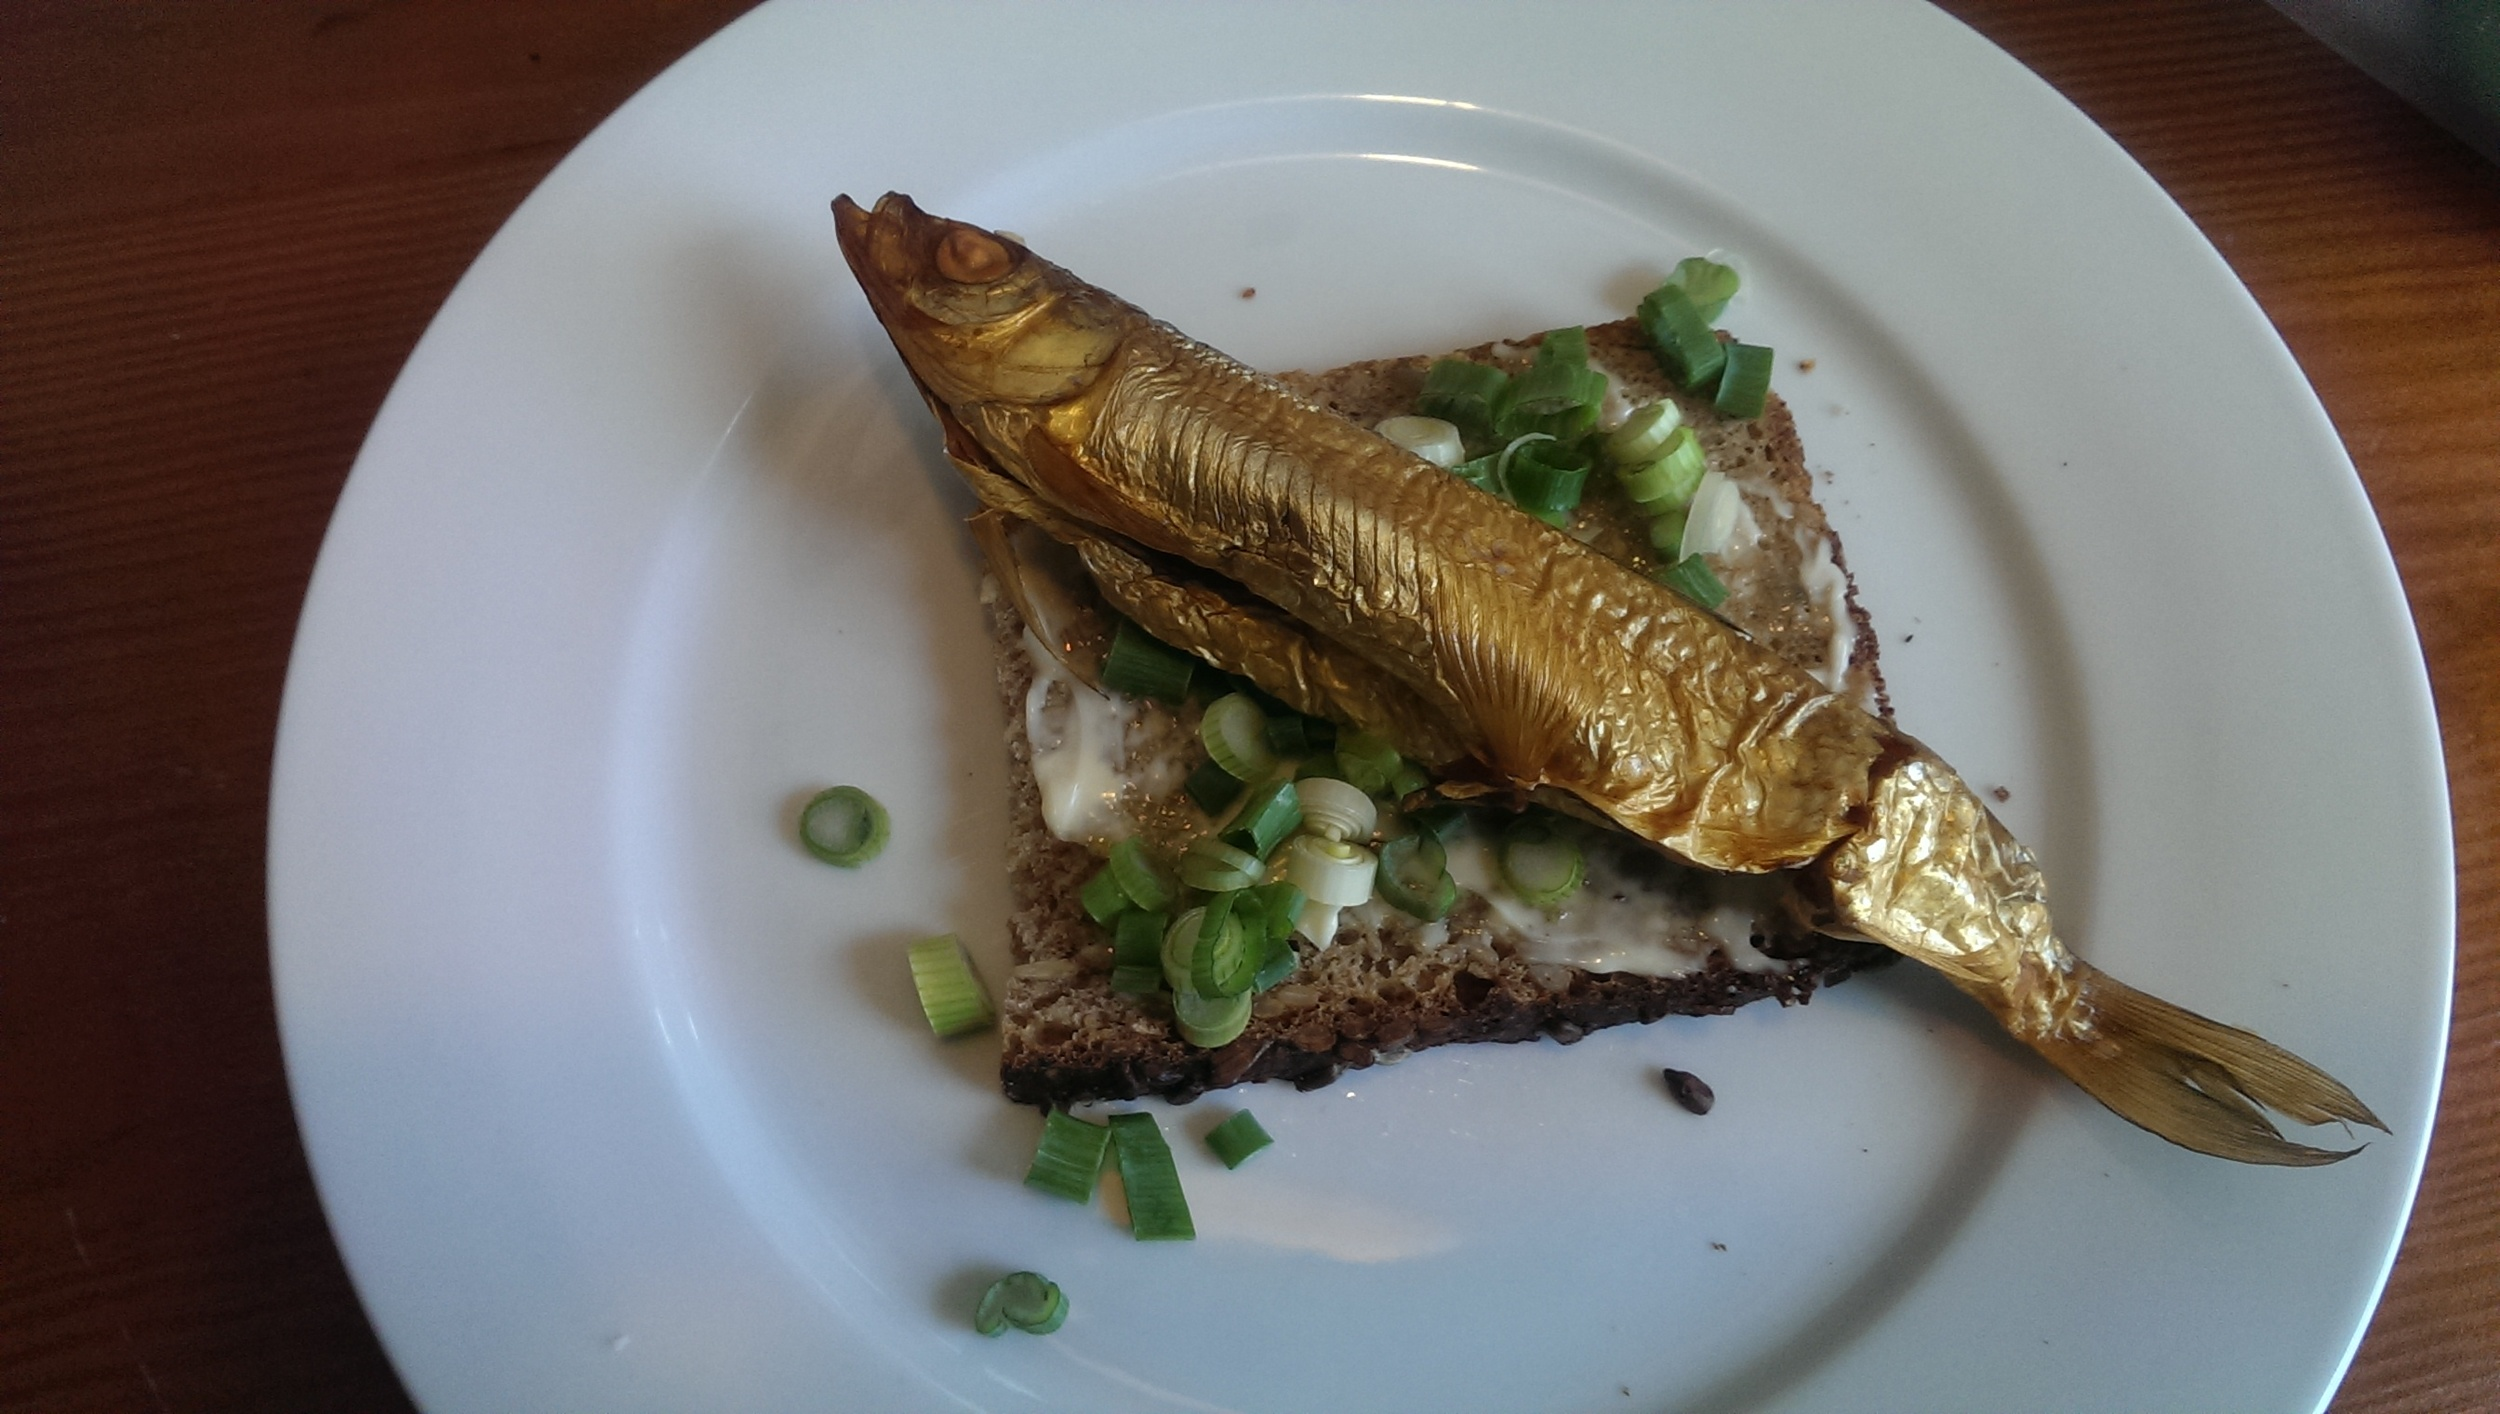 Smoked Chub Fish on sunflower seed rye with scallions ... before.